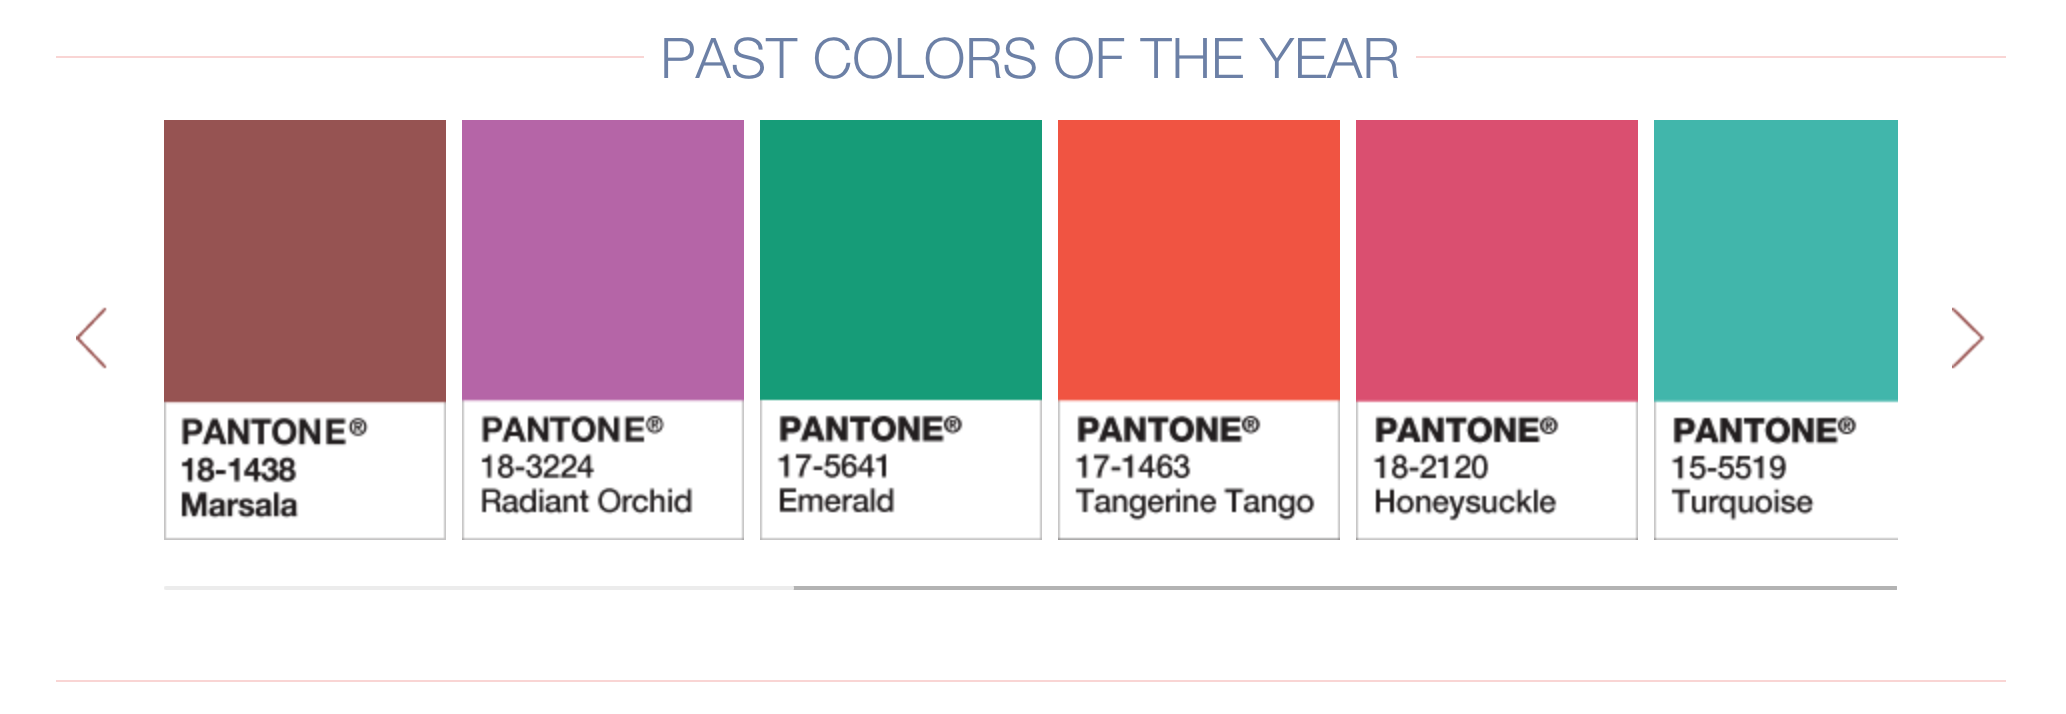 Past colors of the year from Pantone